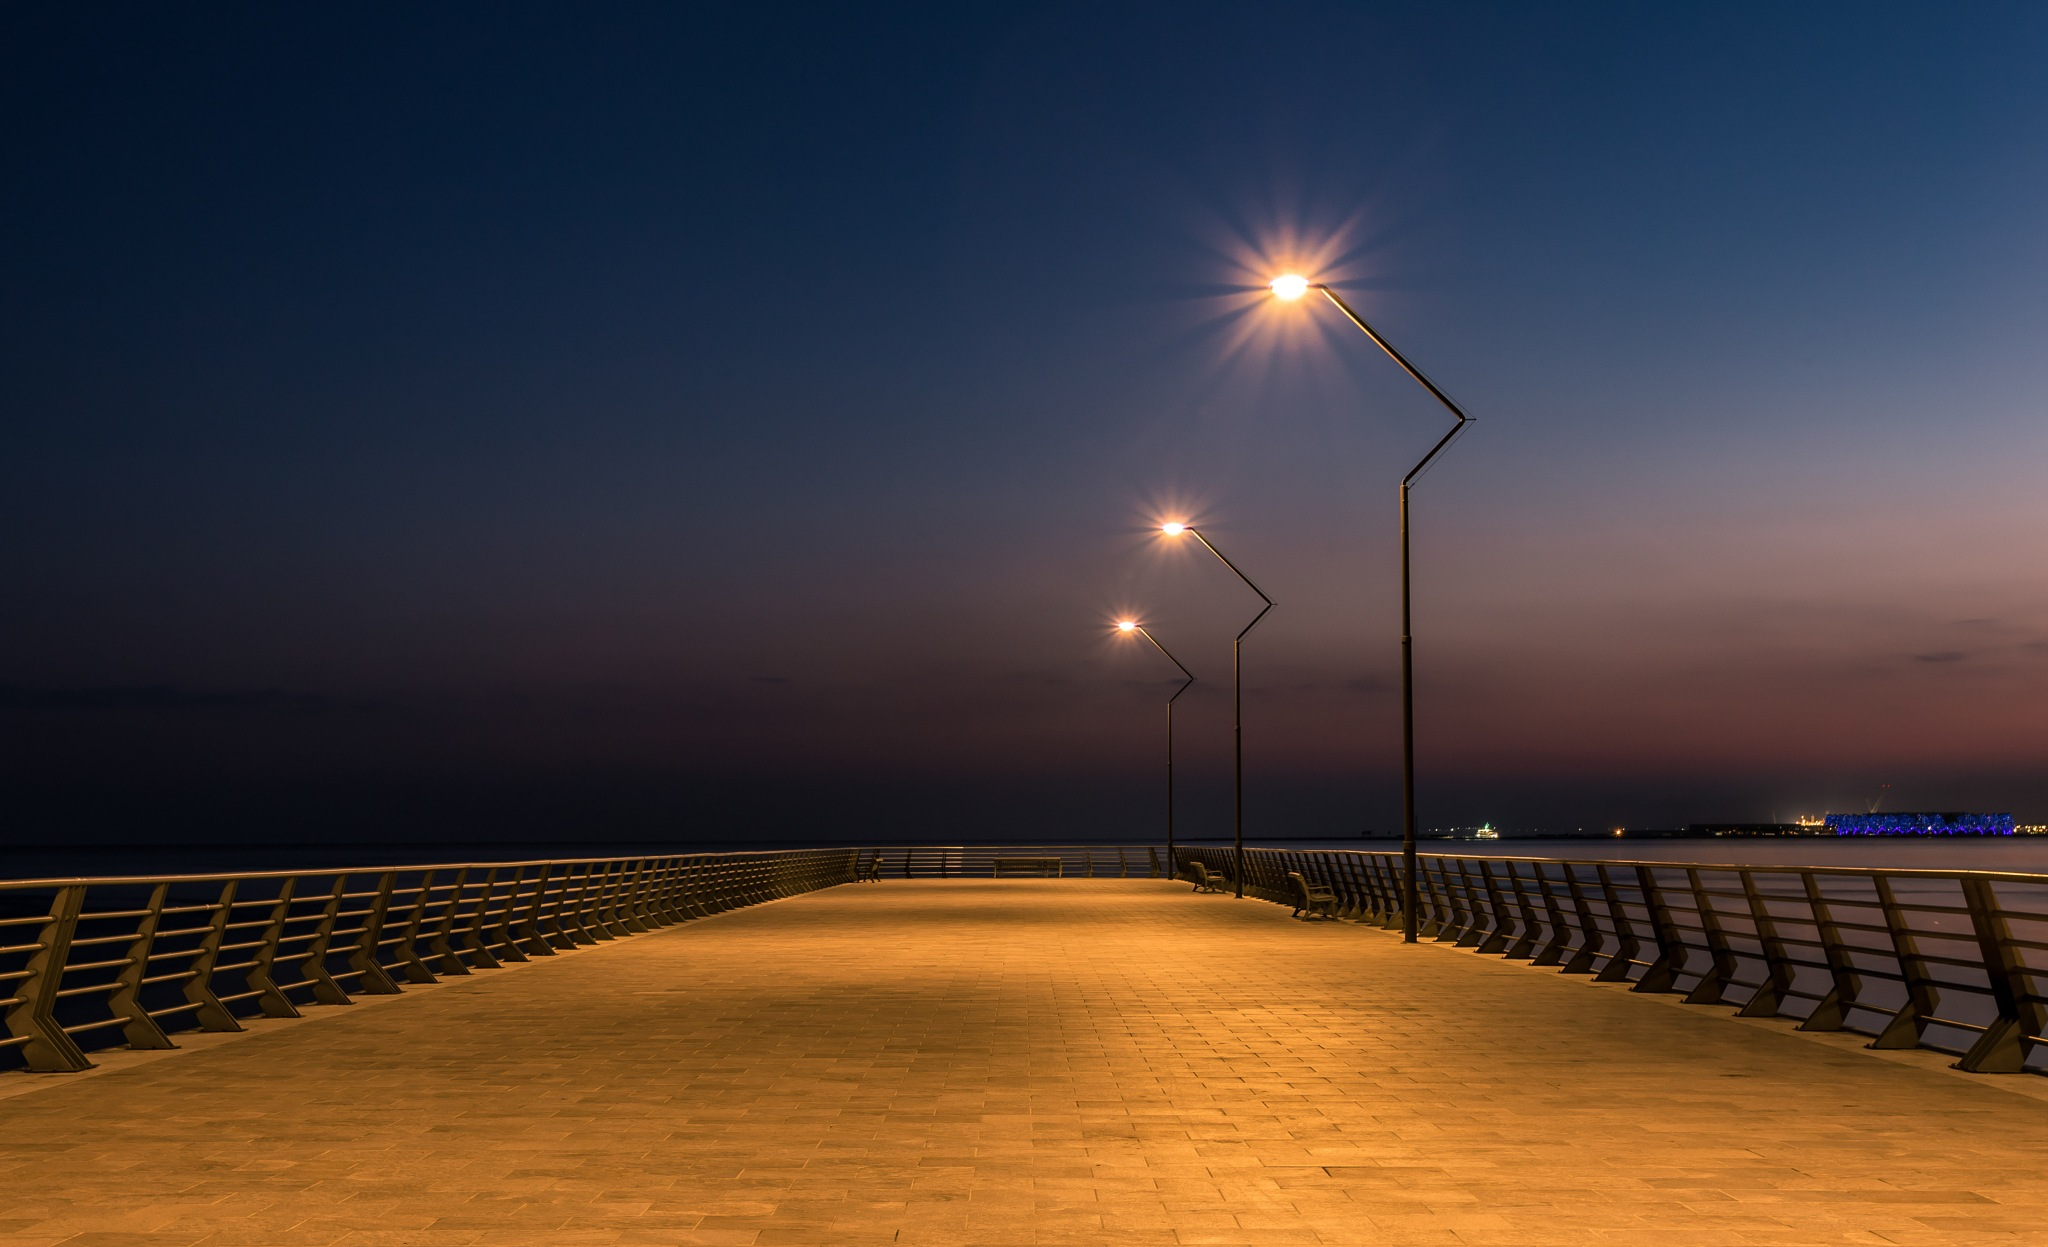 Evening on the seafront by Emil Qazi